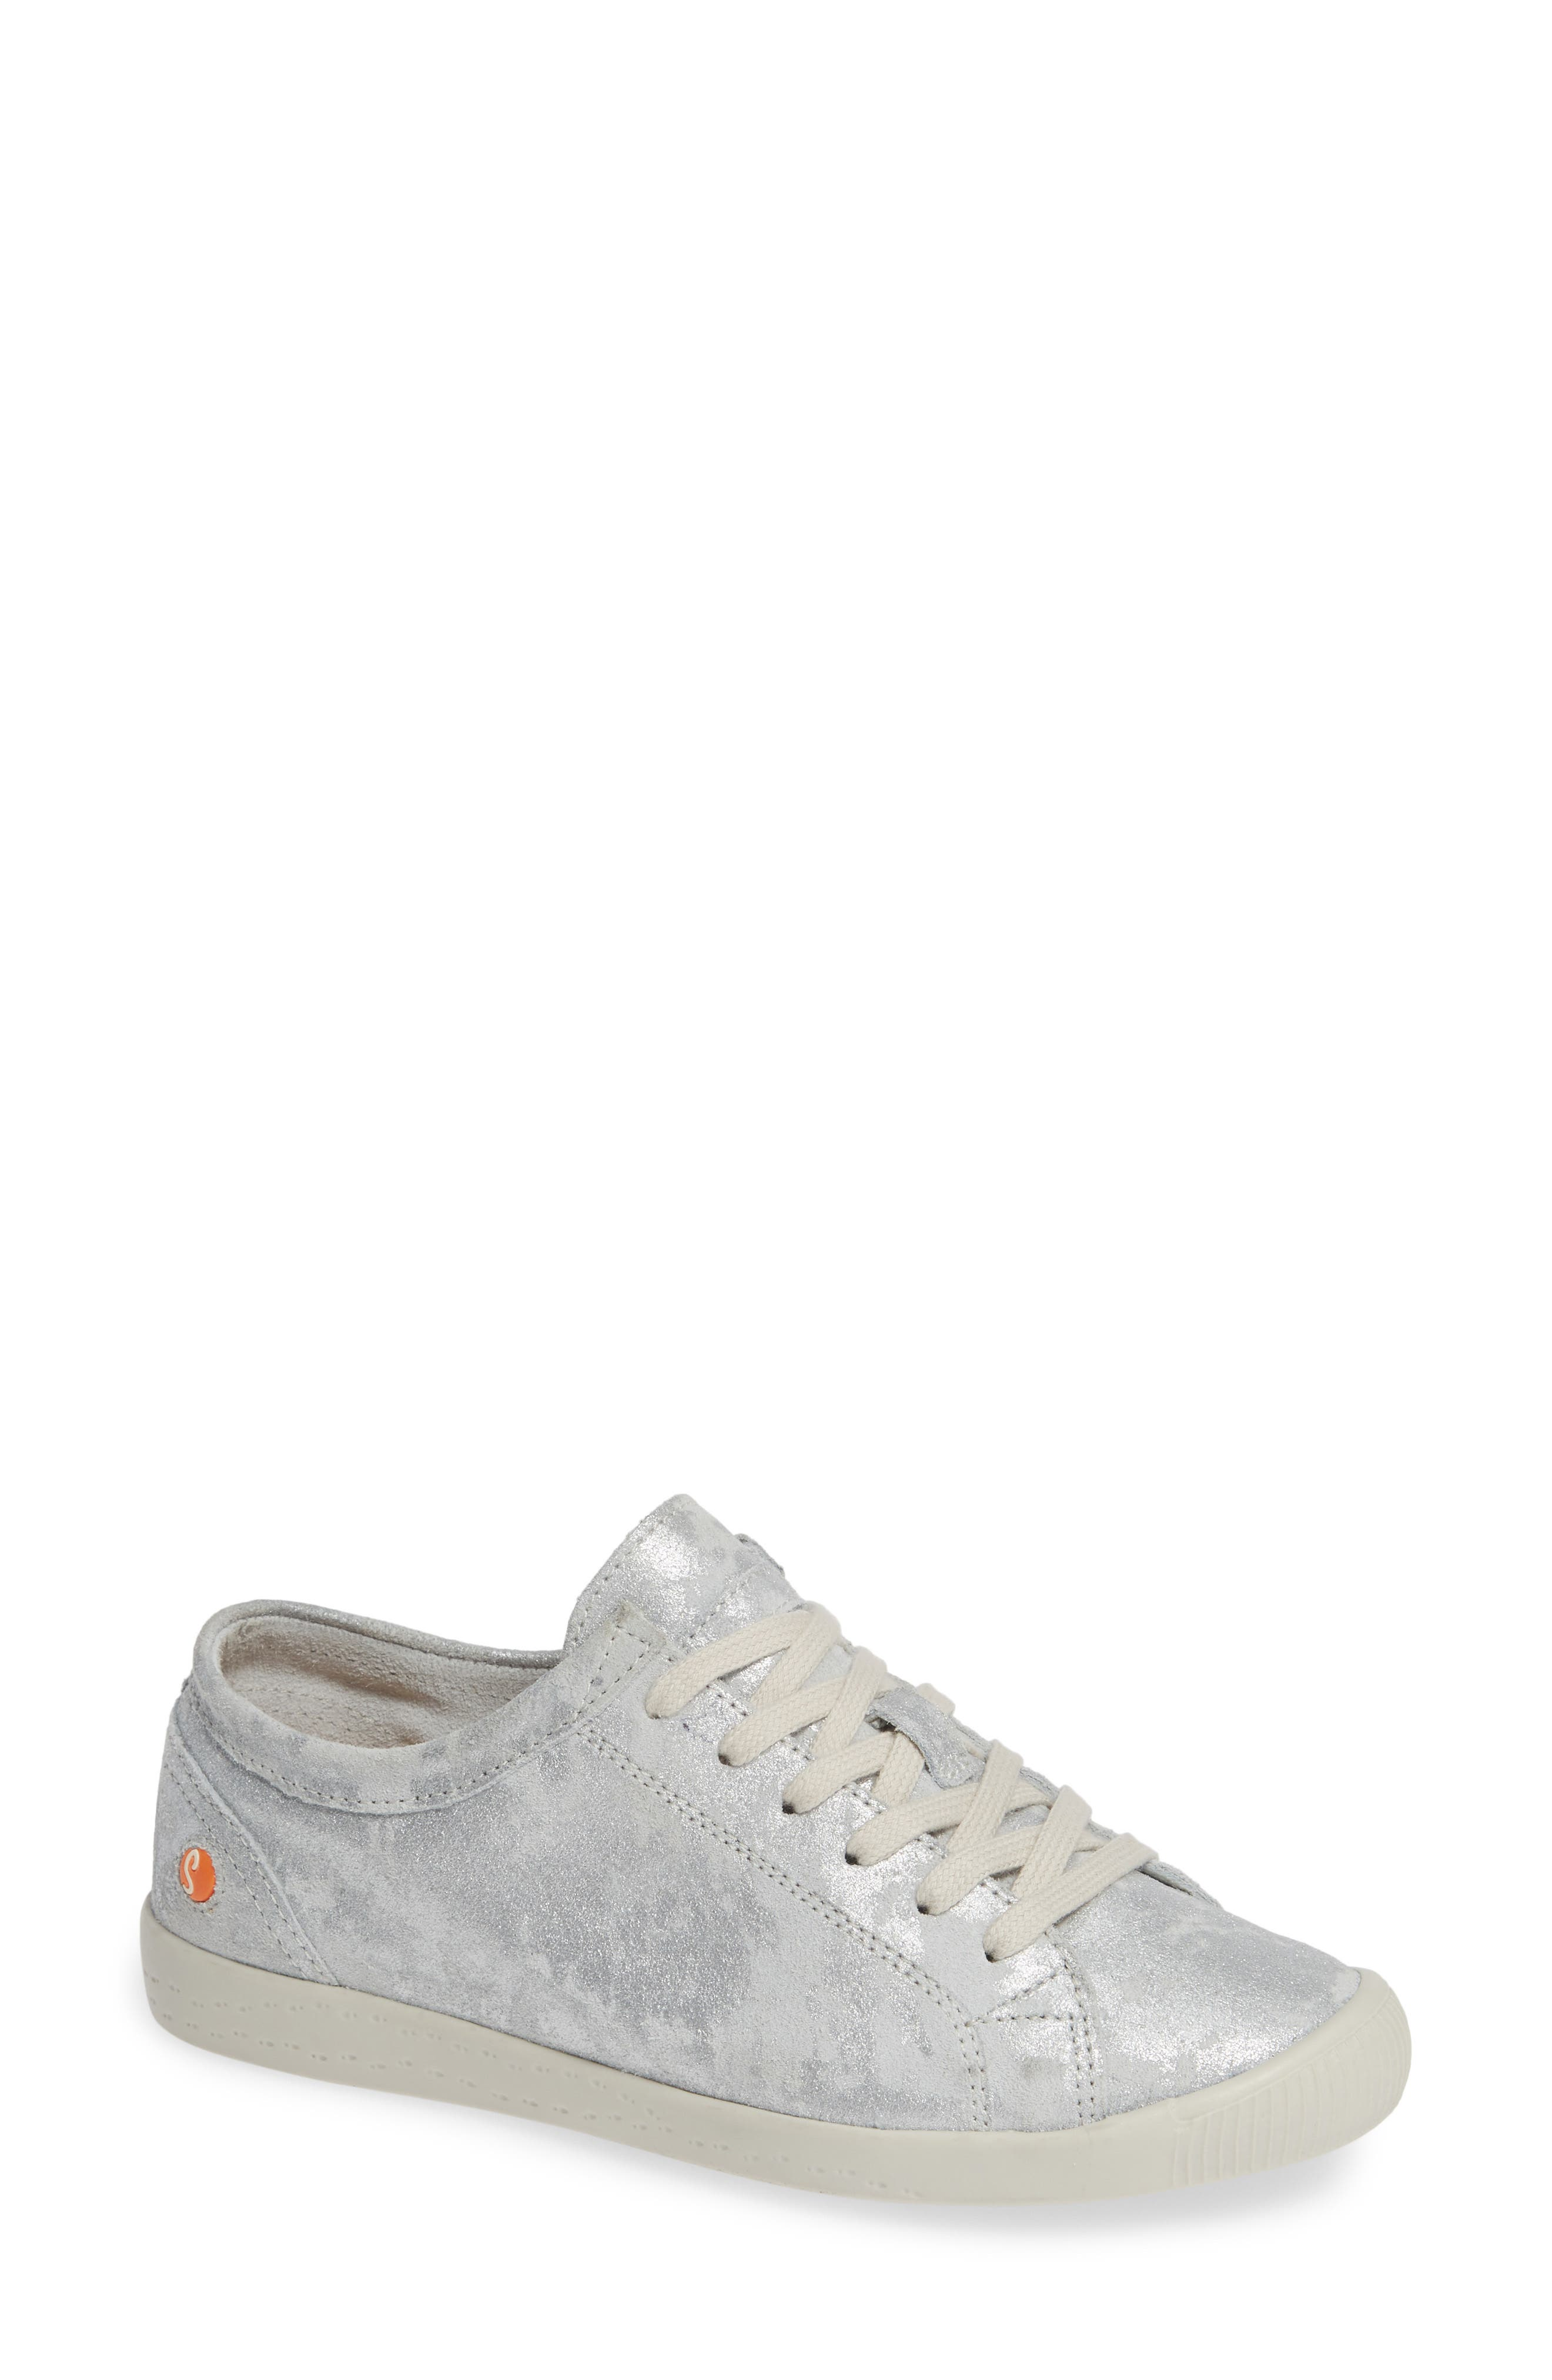 Softinos By Fly London Isla Distressed Sneaker, White